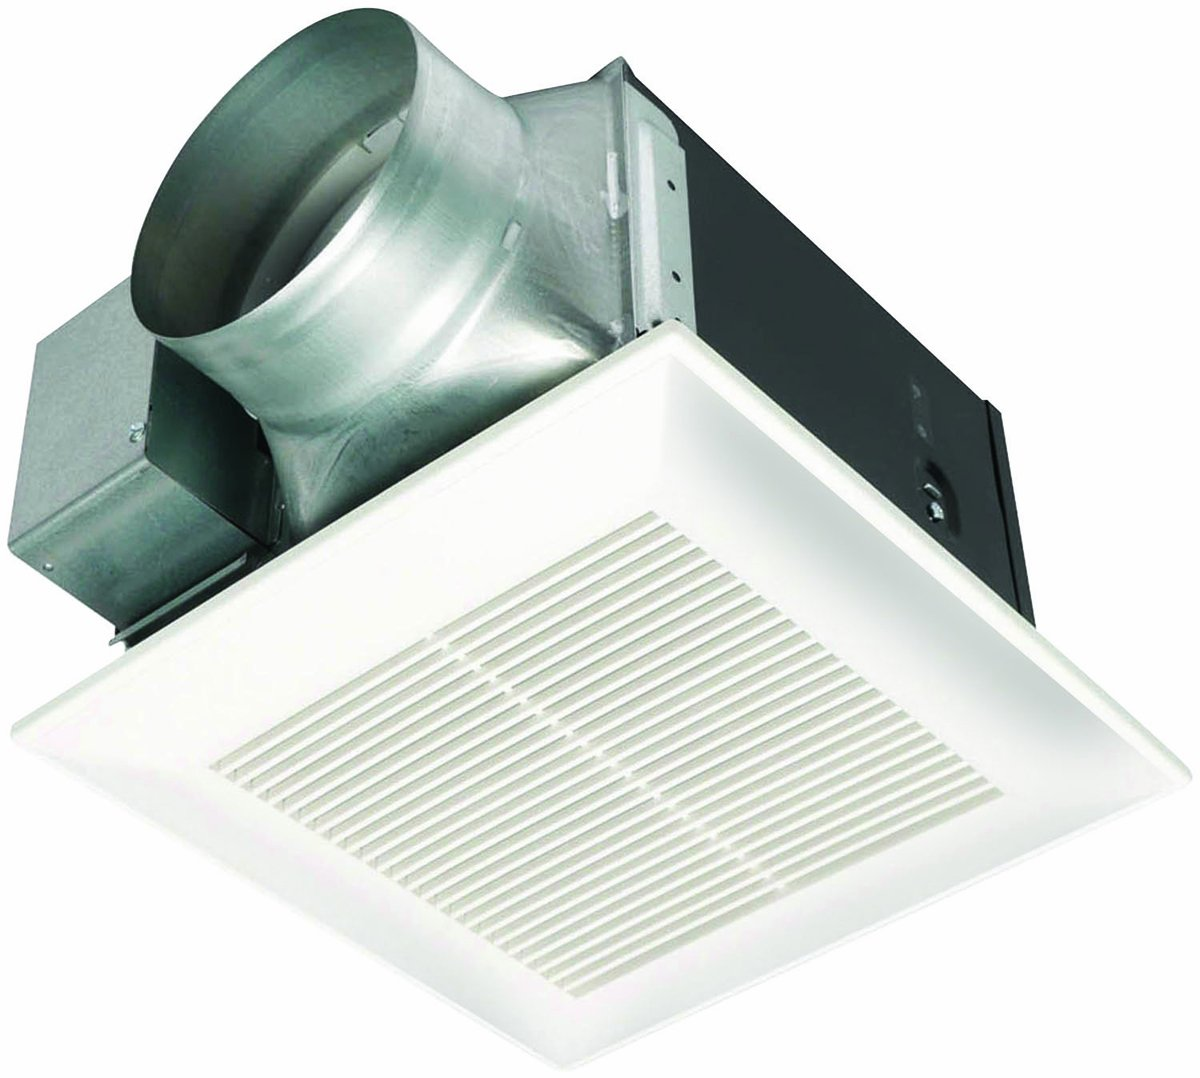 liberty bathroom exhaust extractor ventilation full alluring industrial vent foundation panasonic lights fan and ceiling fans mounted light for design lighting enchanting interior vents of pretty size with